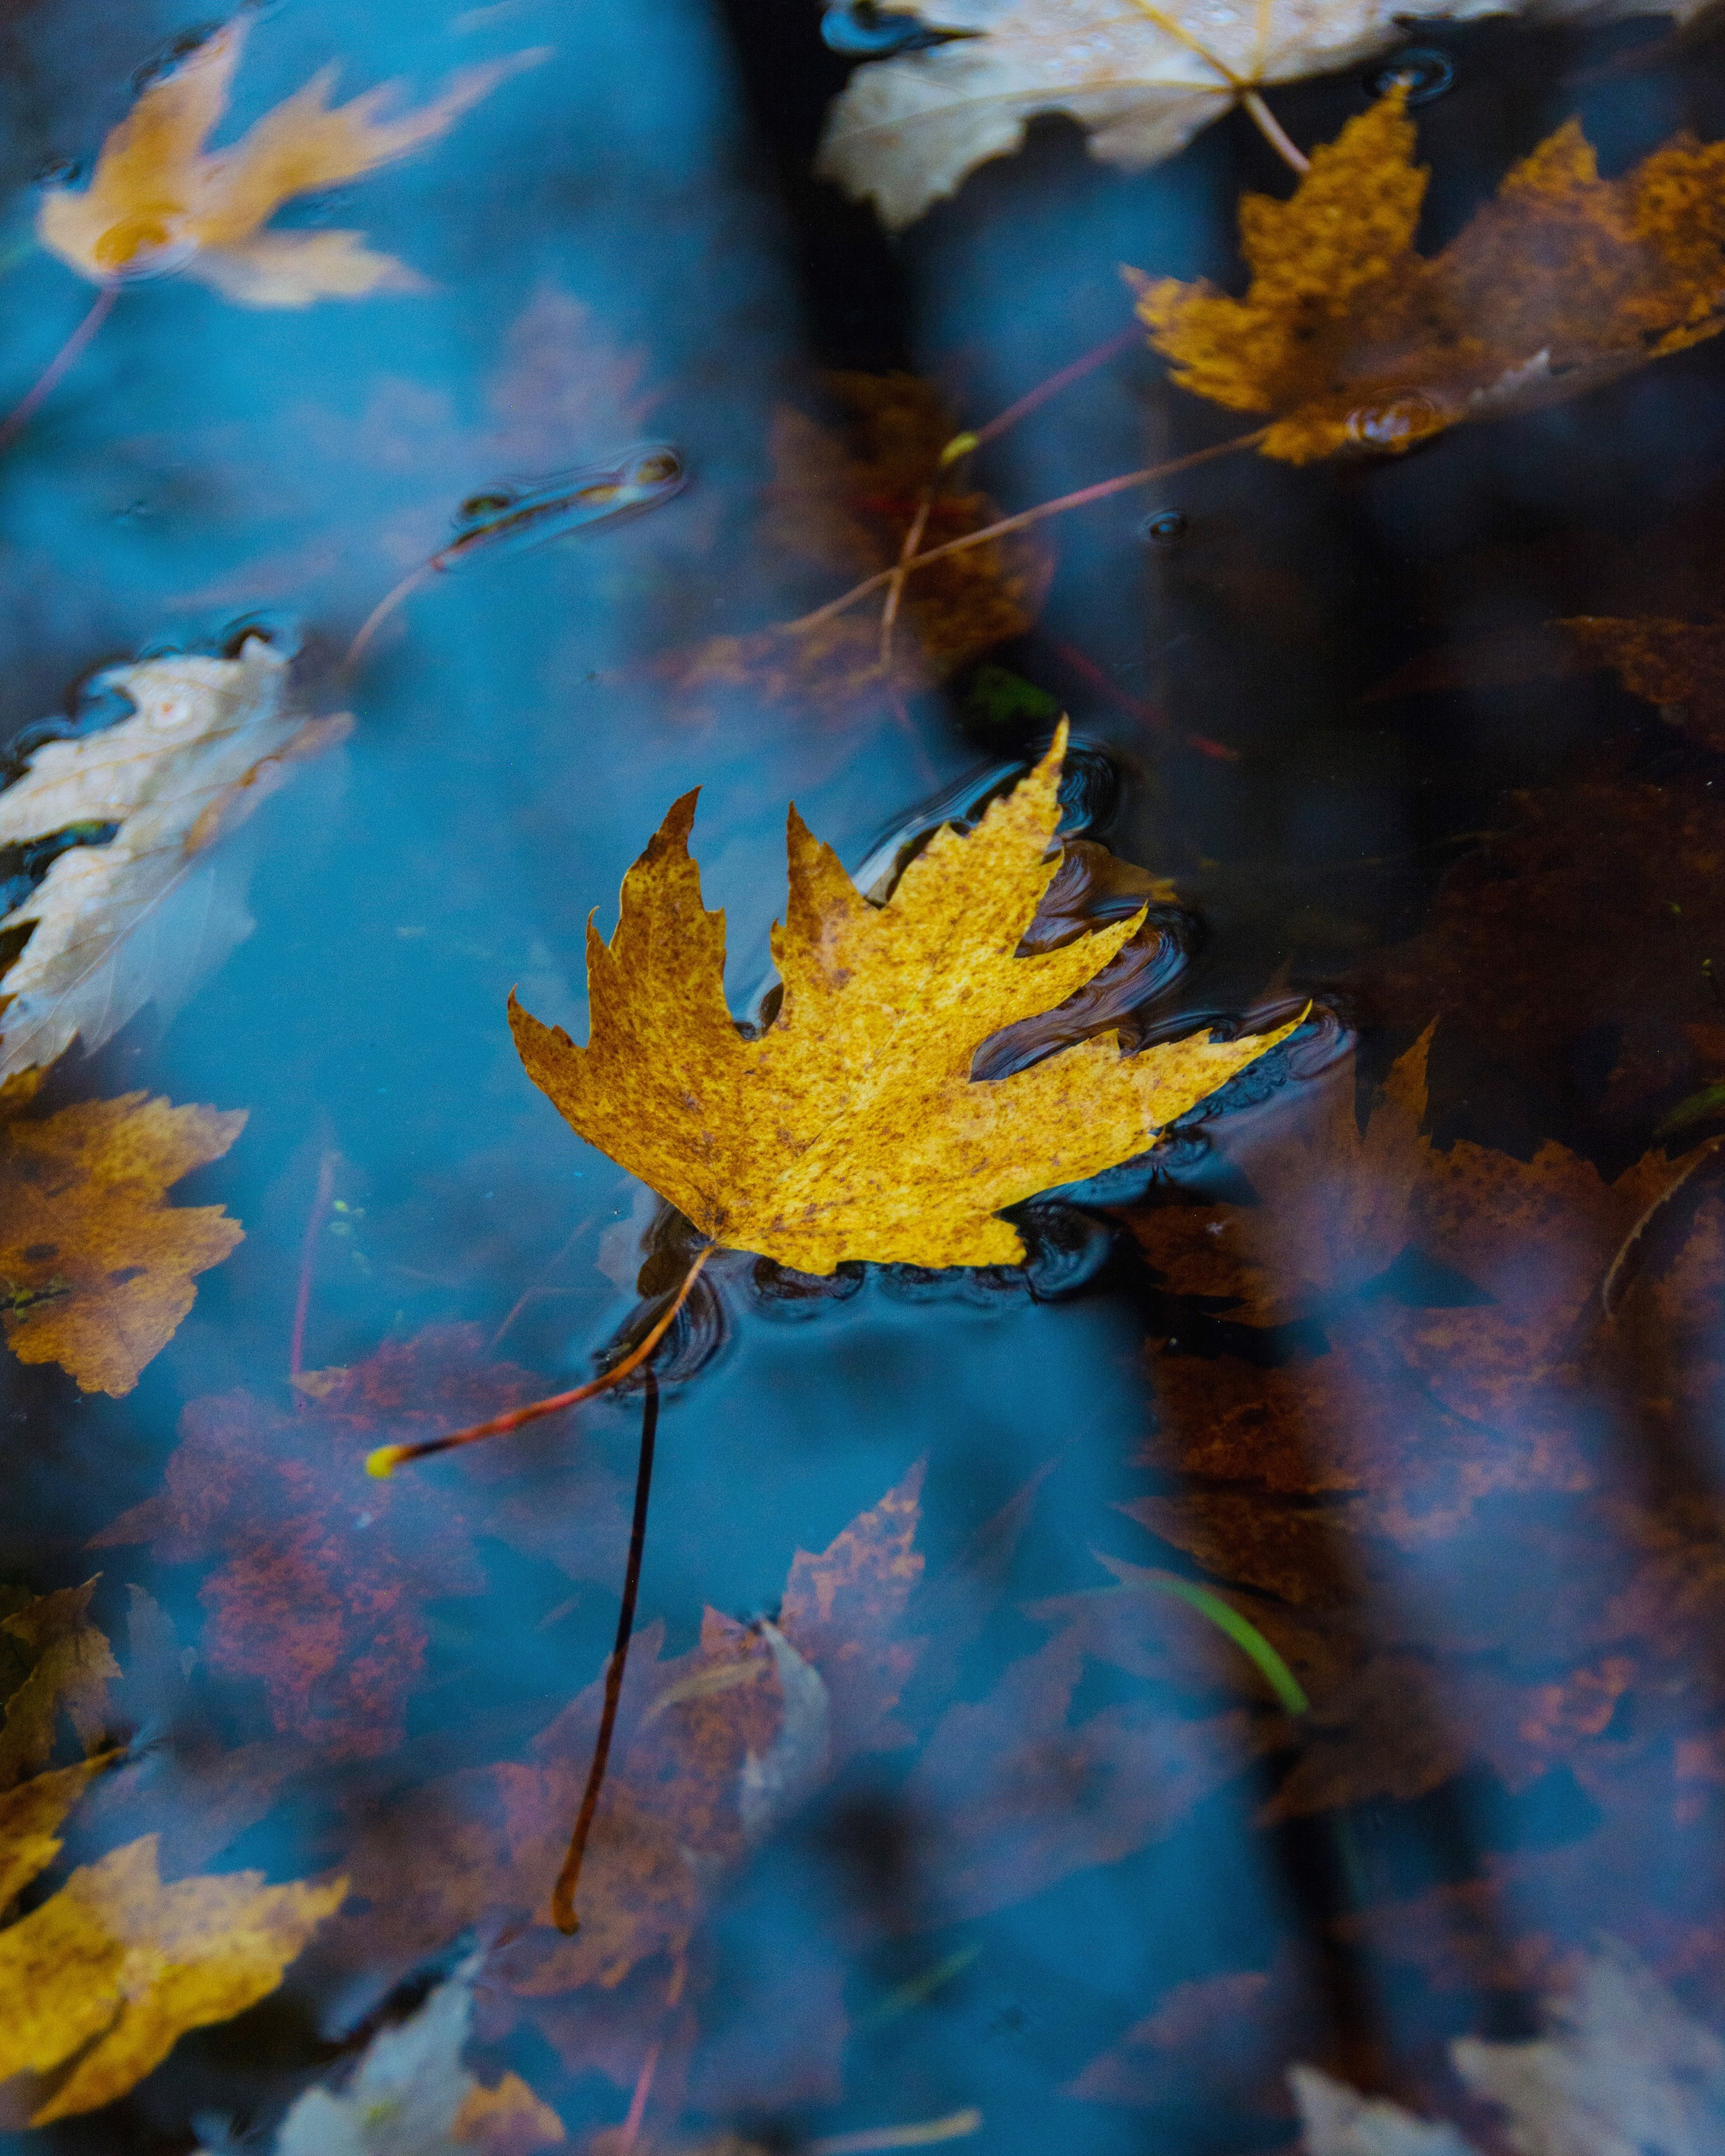 Bright yellow maple leaf floating on blue water